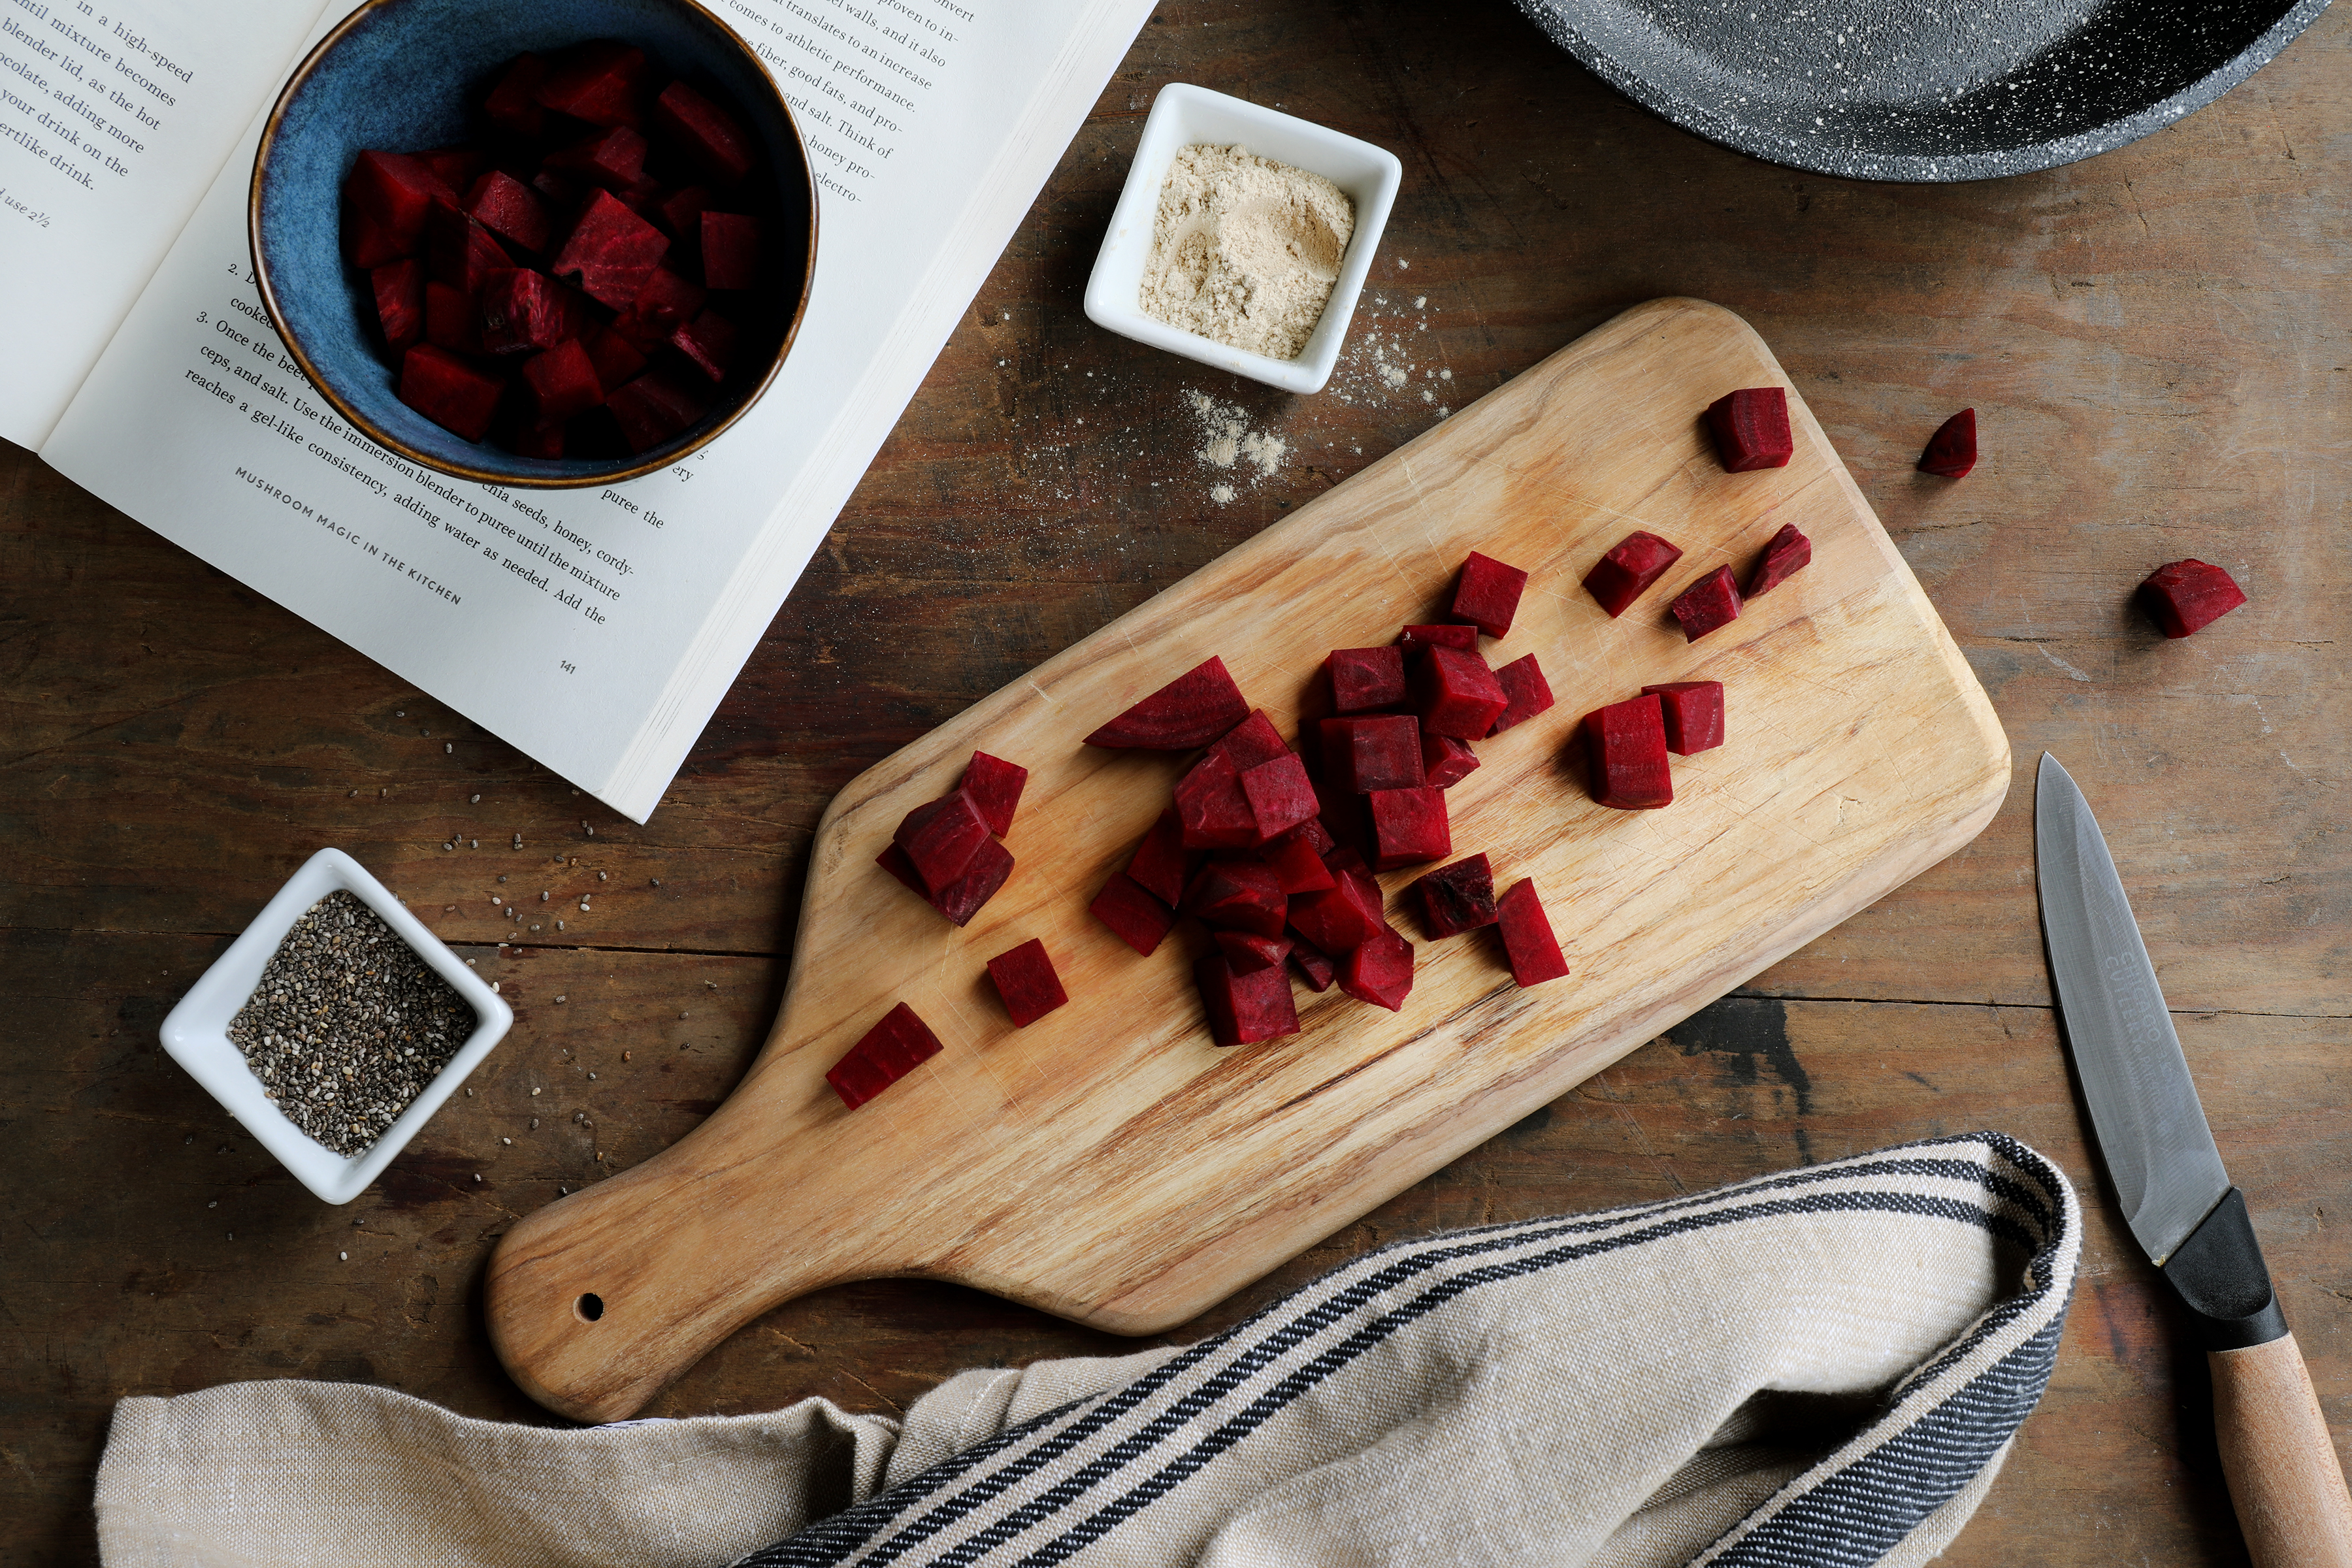 Cutting board with chopped beets with small bowls filled with other botanical ingredients.